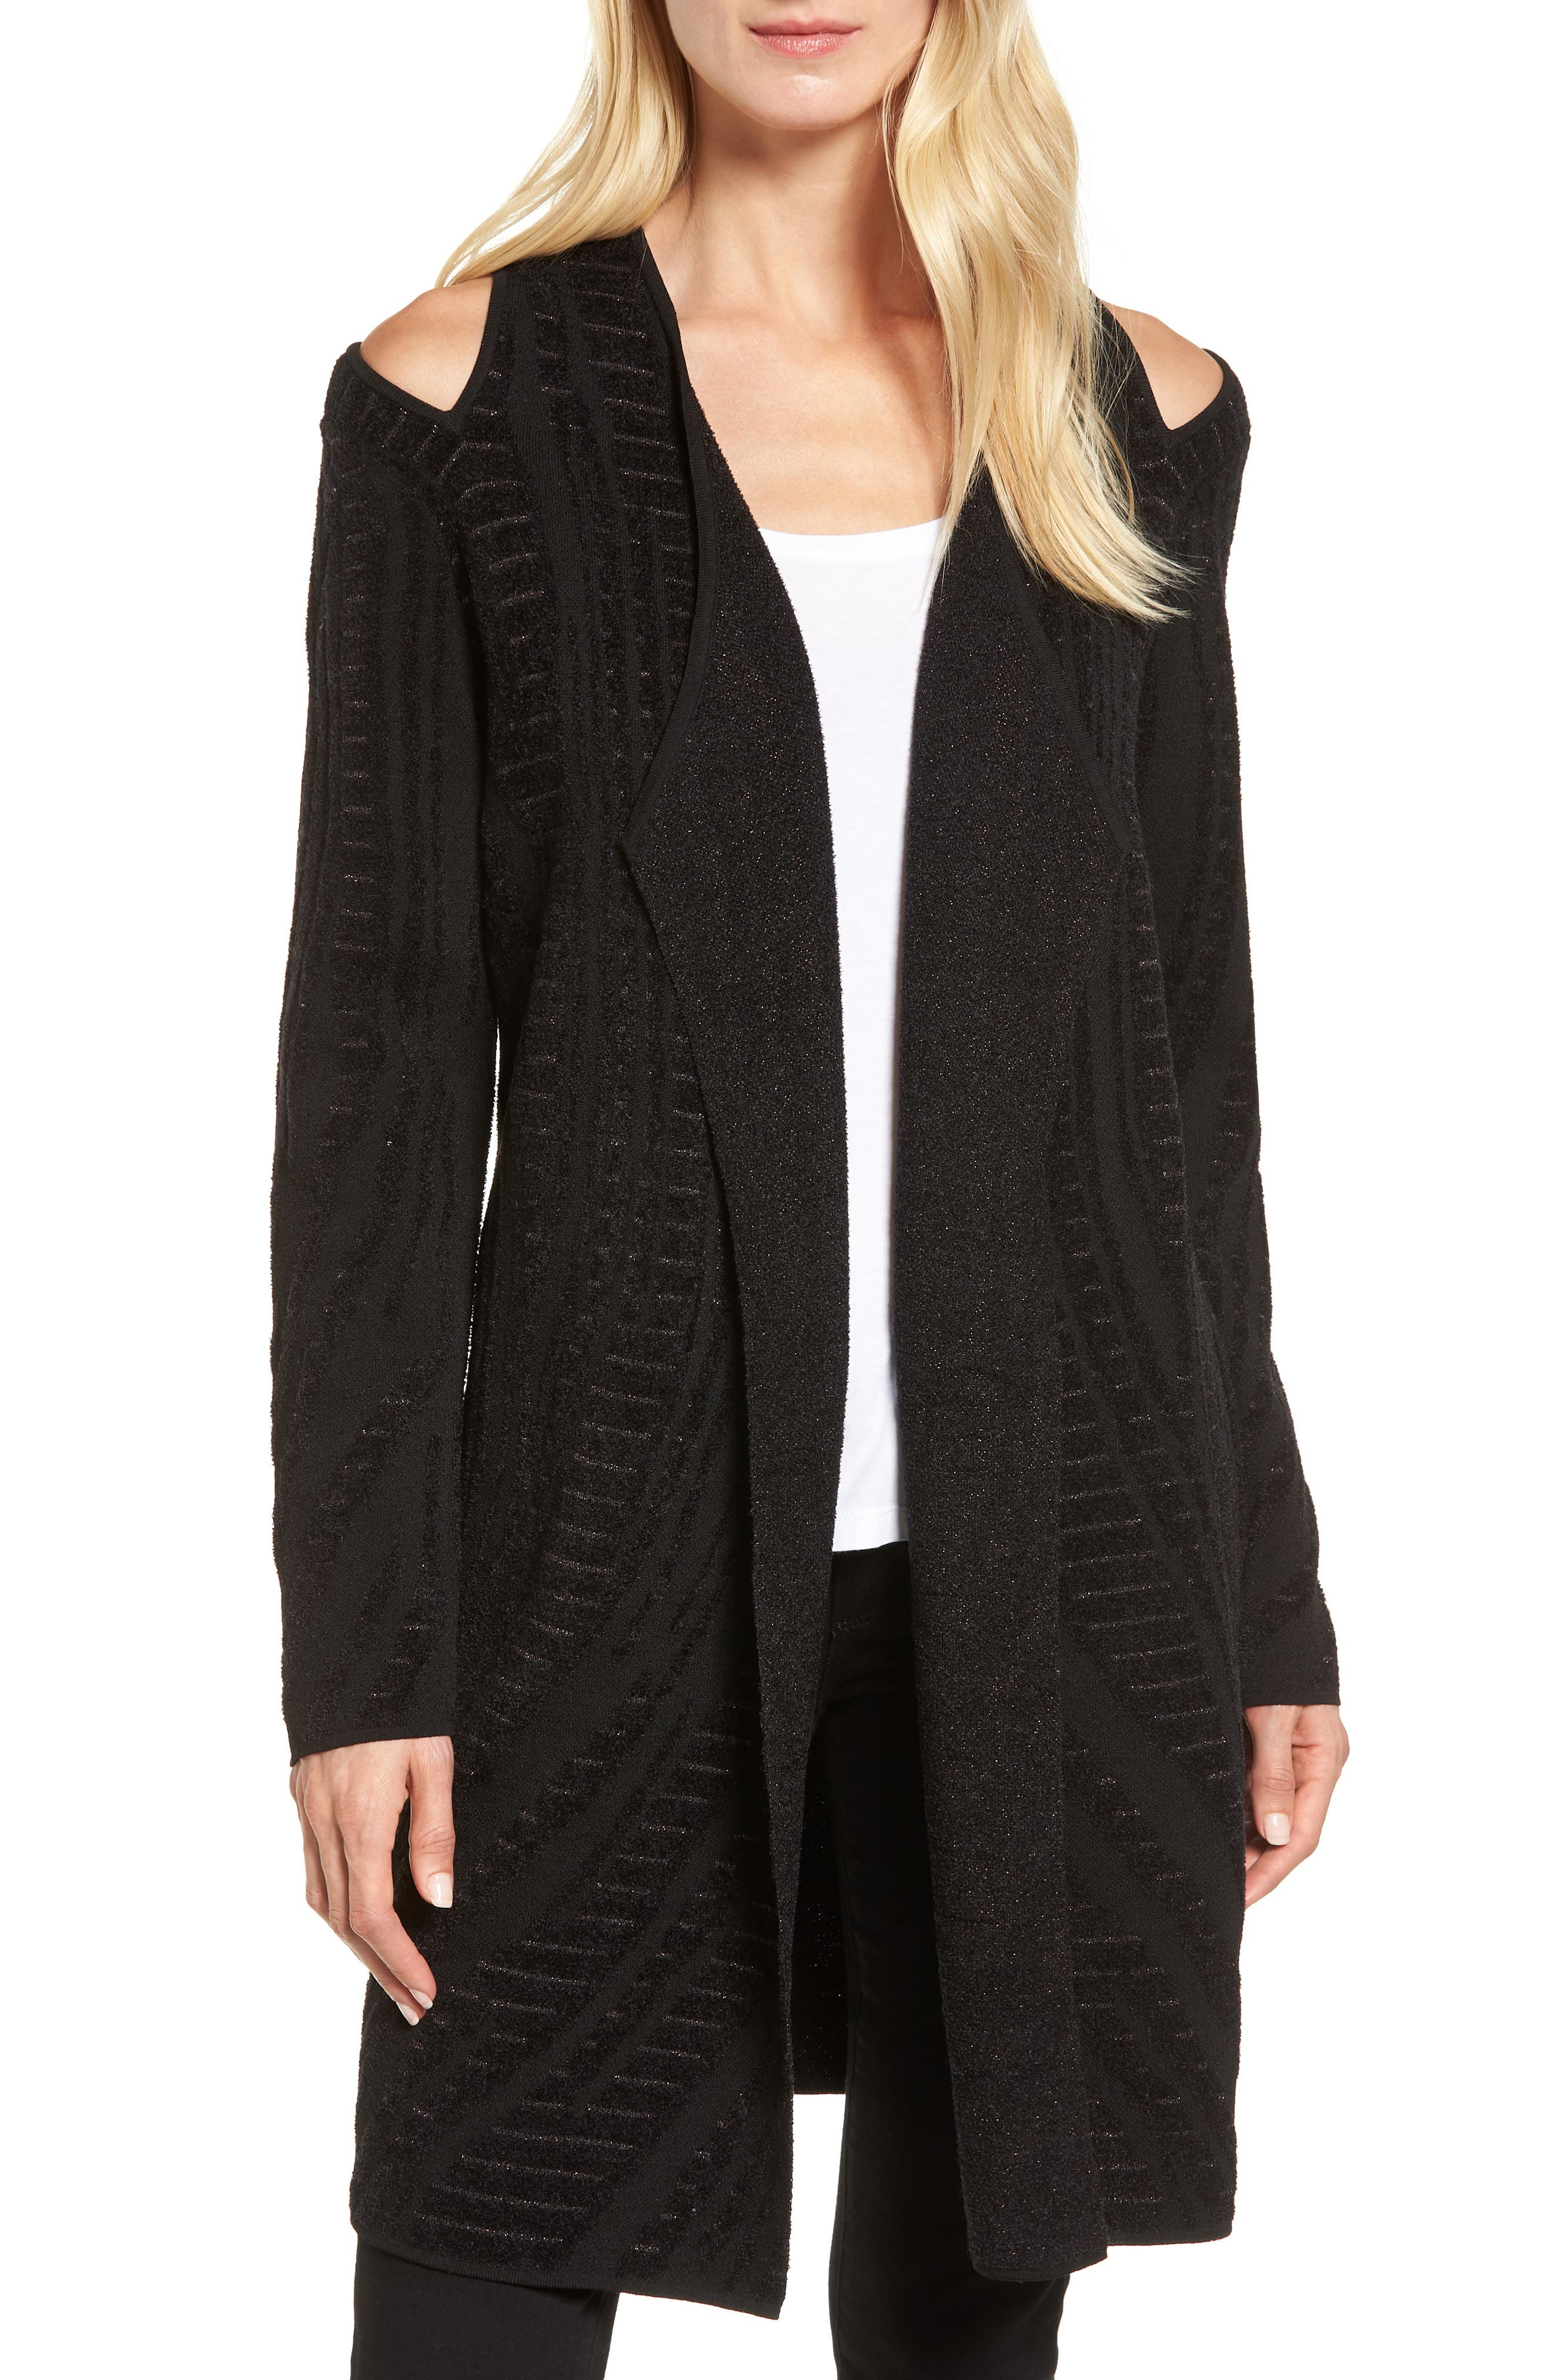 Alternate Image 1 Selected - NIC+ZOE Winter Reign Cold Shoulder Cardigan